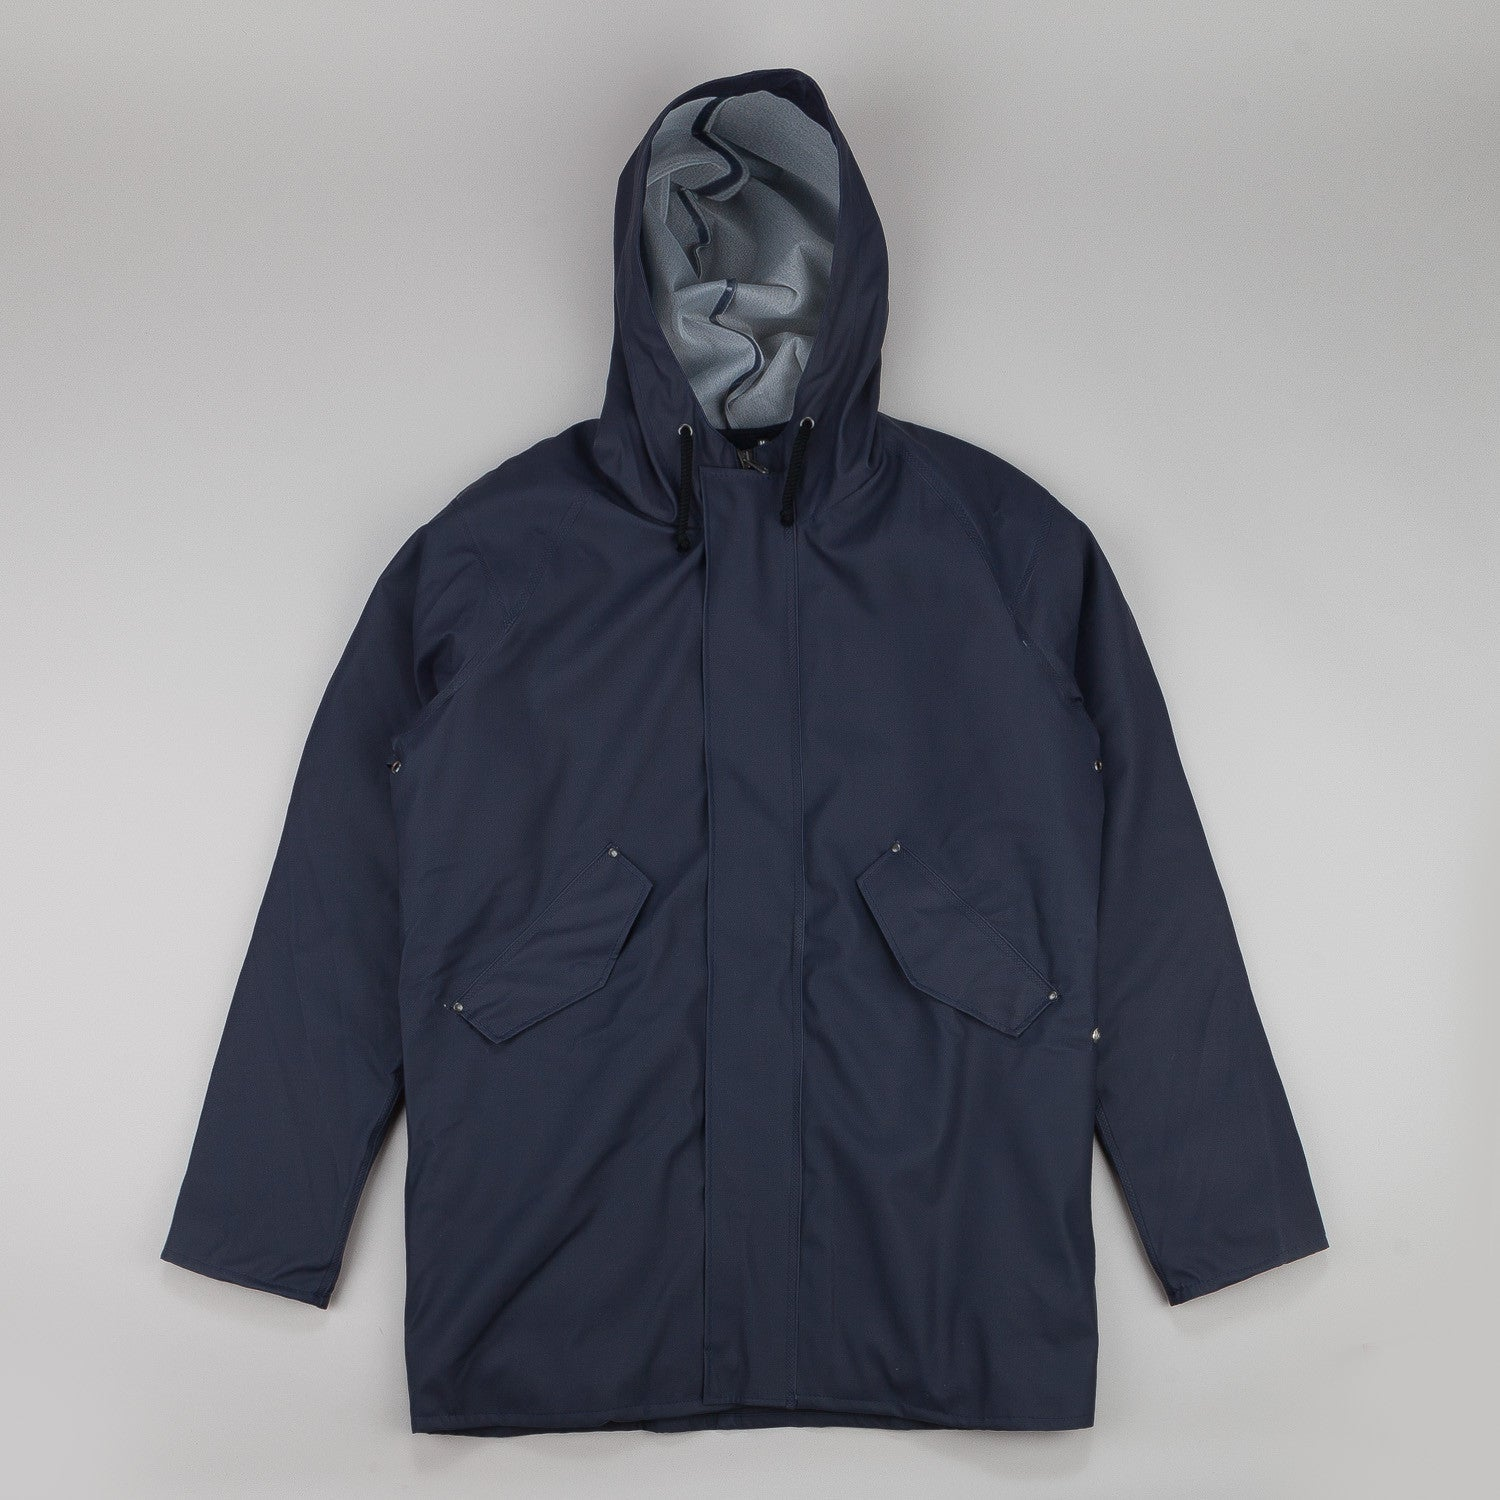 Elka Blavand Vinter Jacket Navy